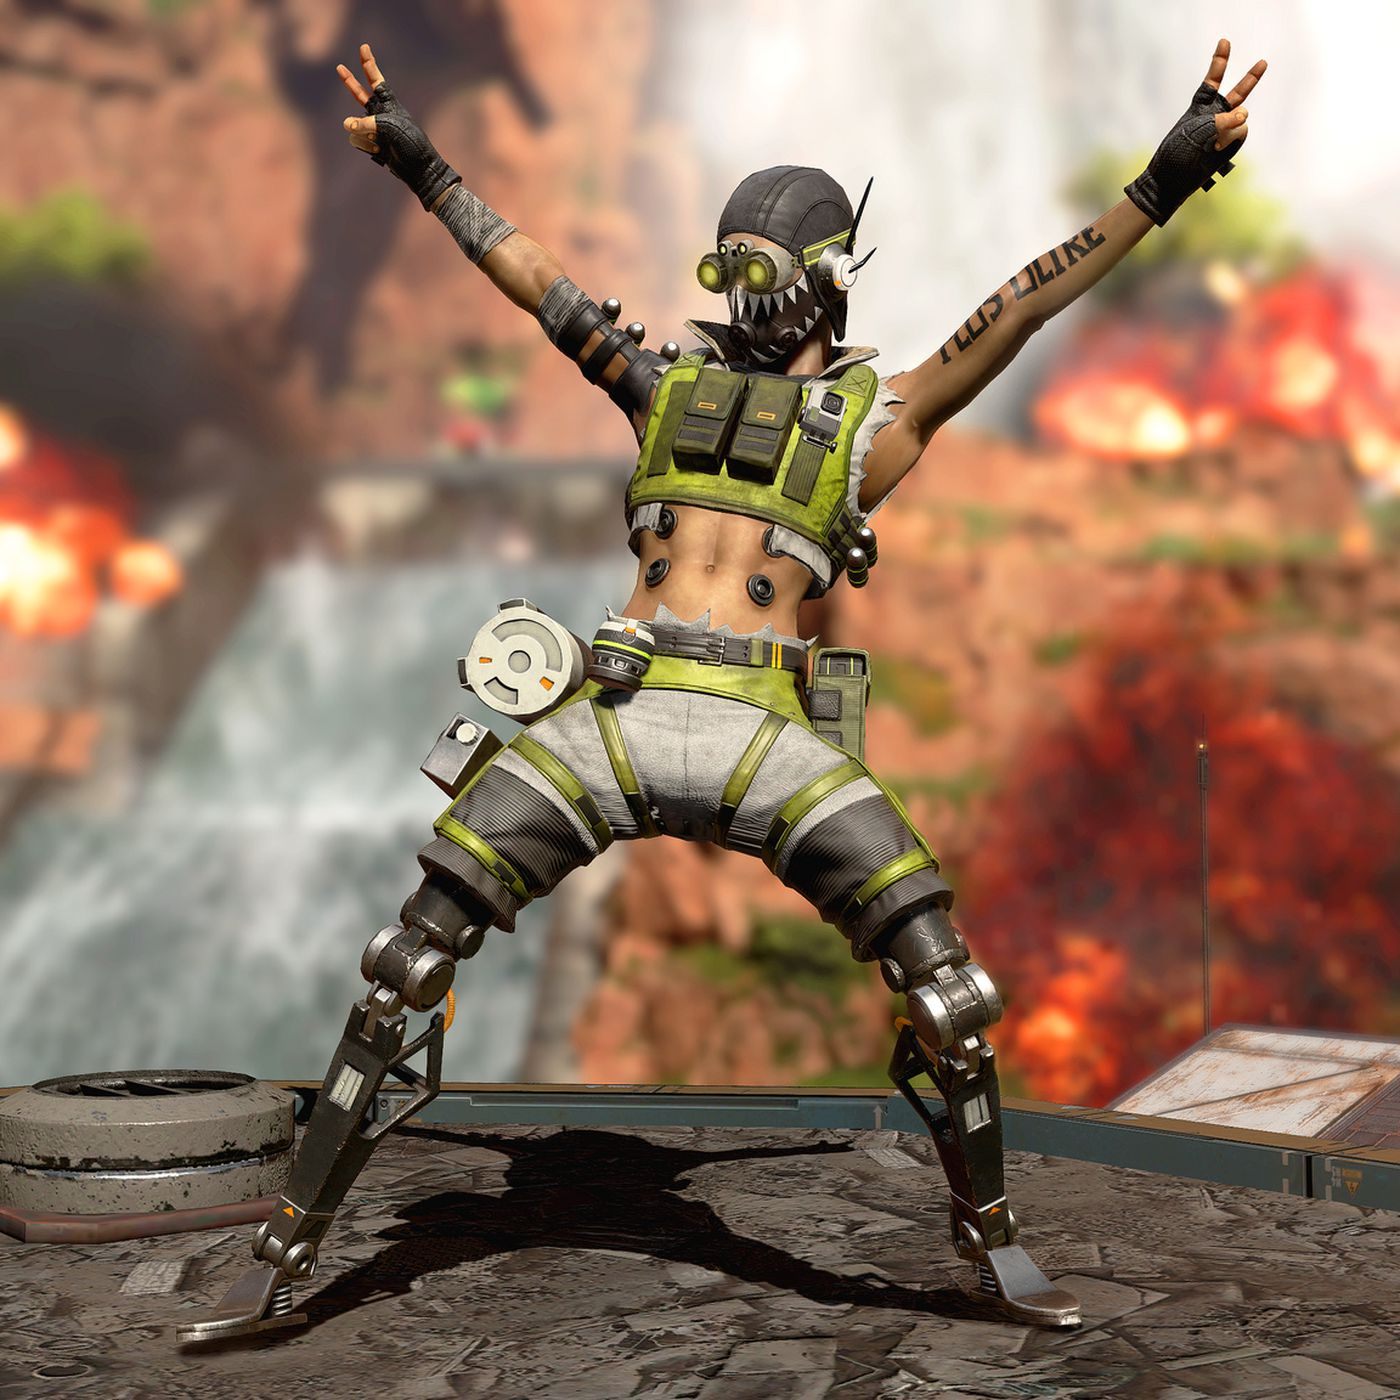 Apex Legends' Octane: character abilities, battle pass skins, and more -  Polygon